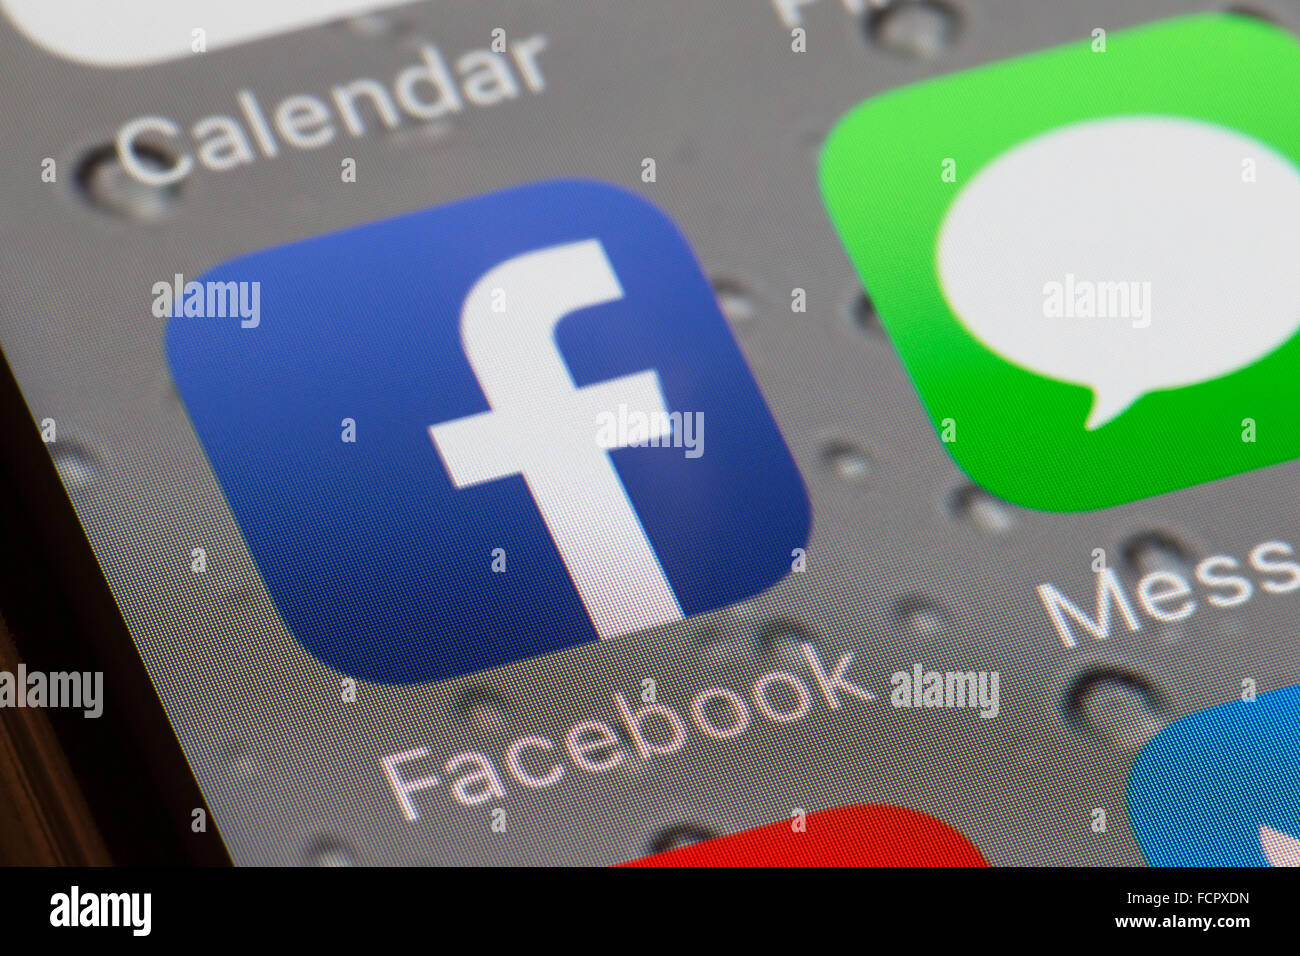 Facebook app icon on an iphone 6 screen - Stock Image